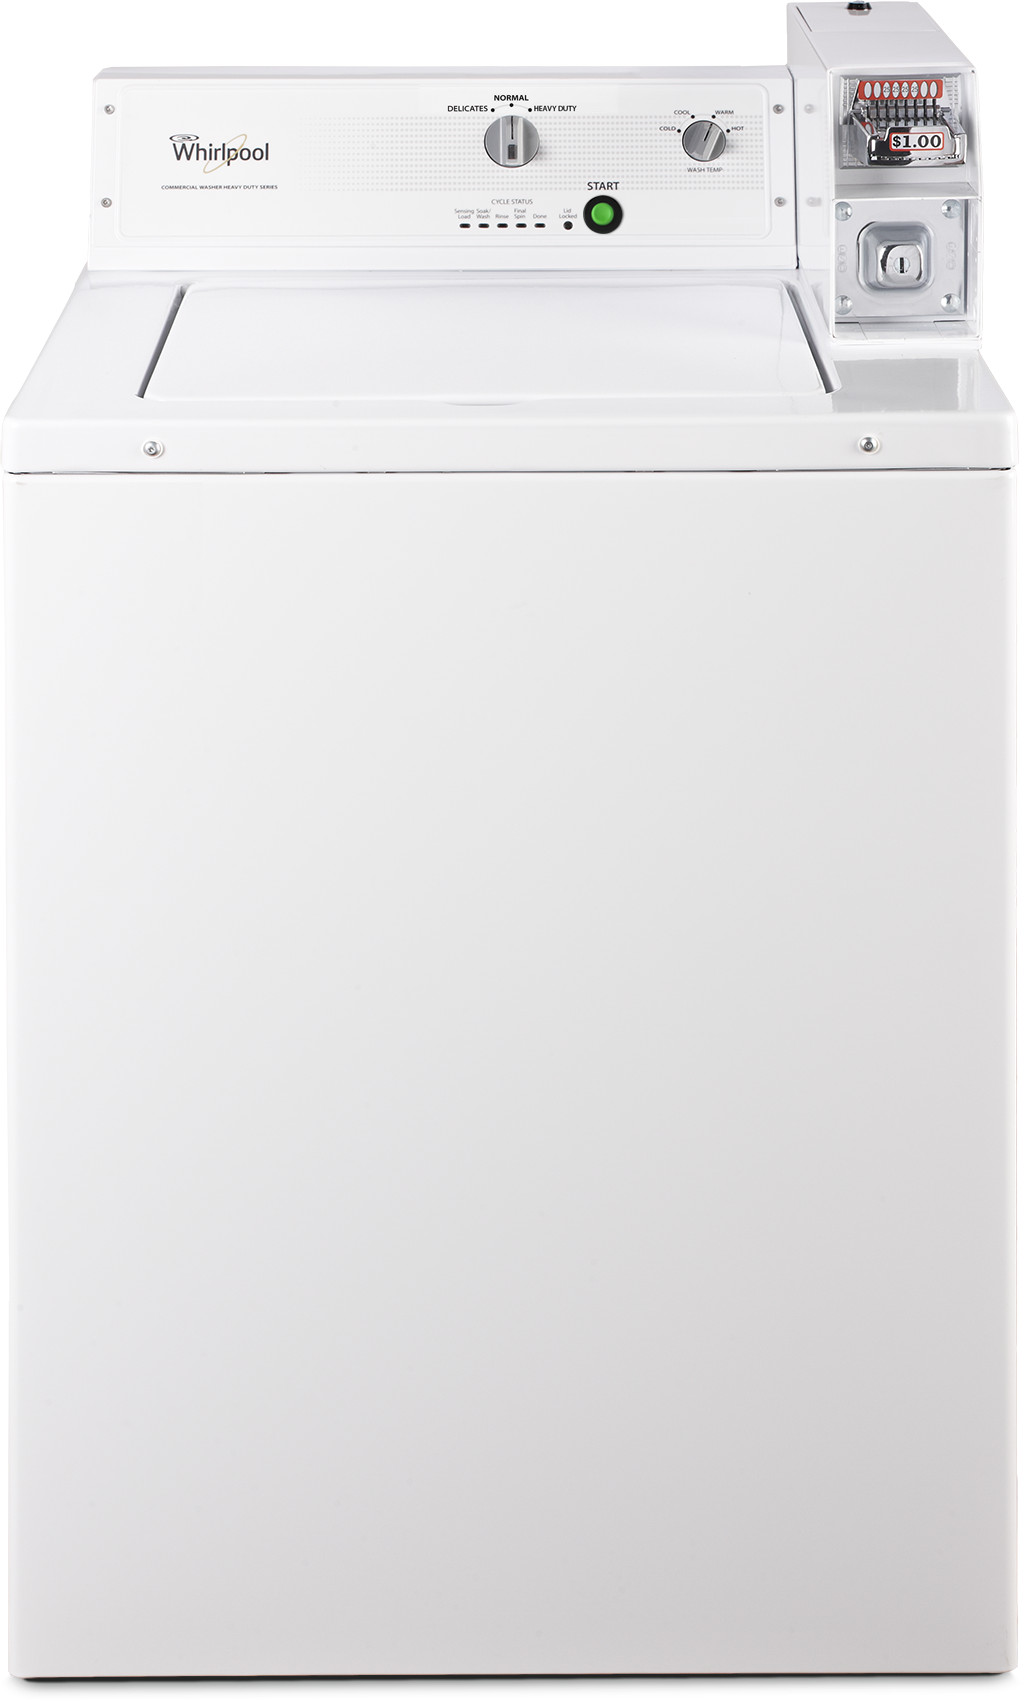 Whirlpool Commercial Laundry CAE2743BQ